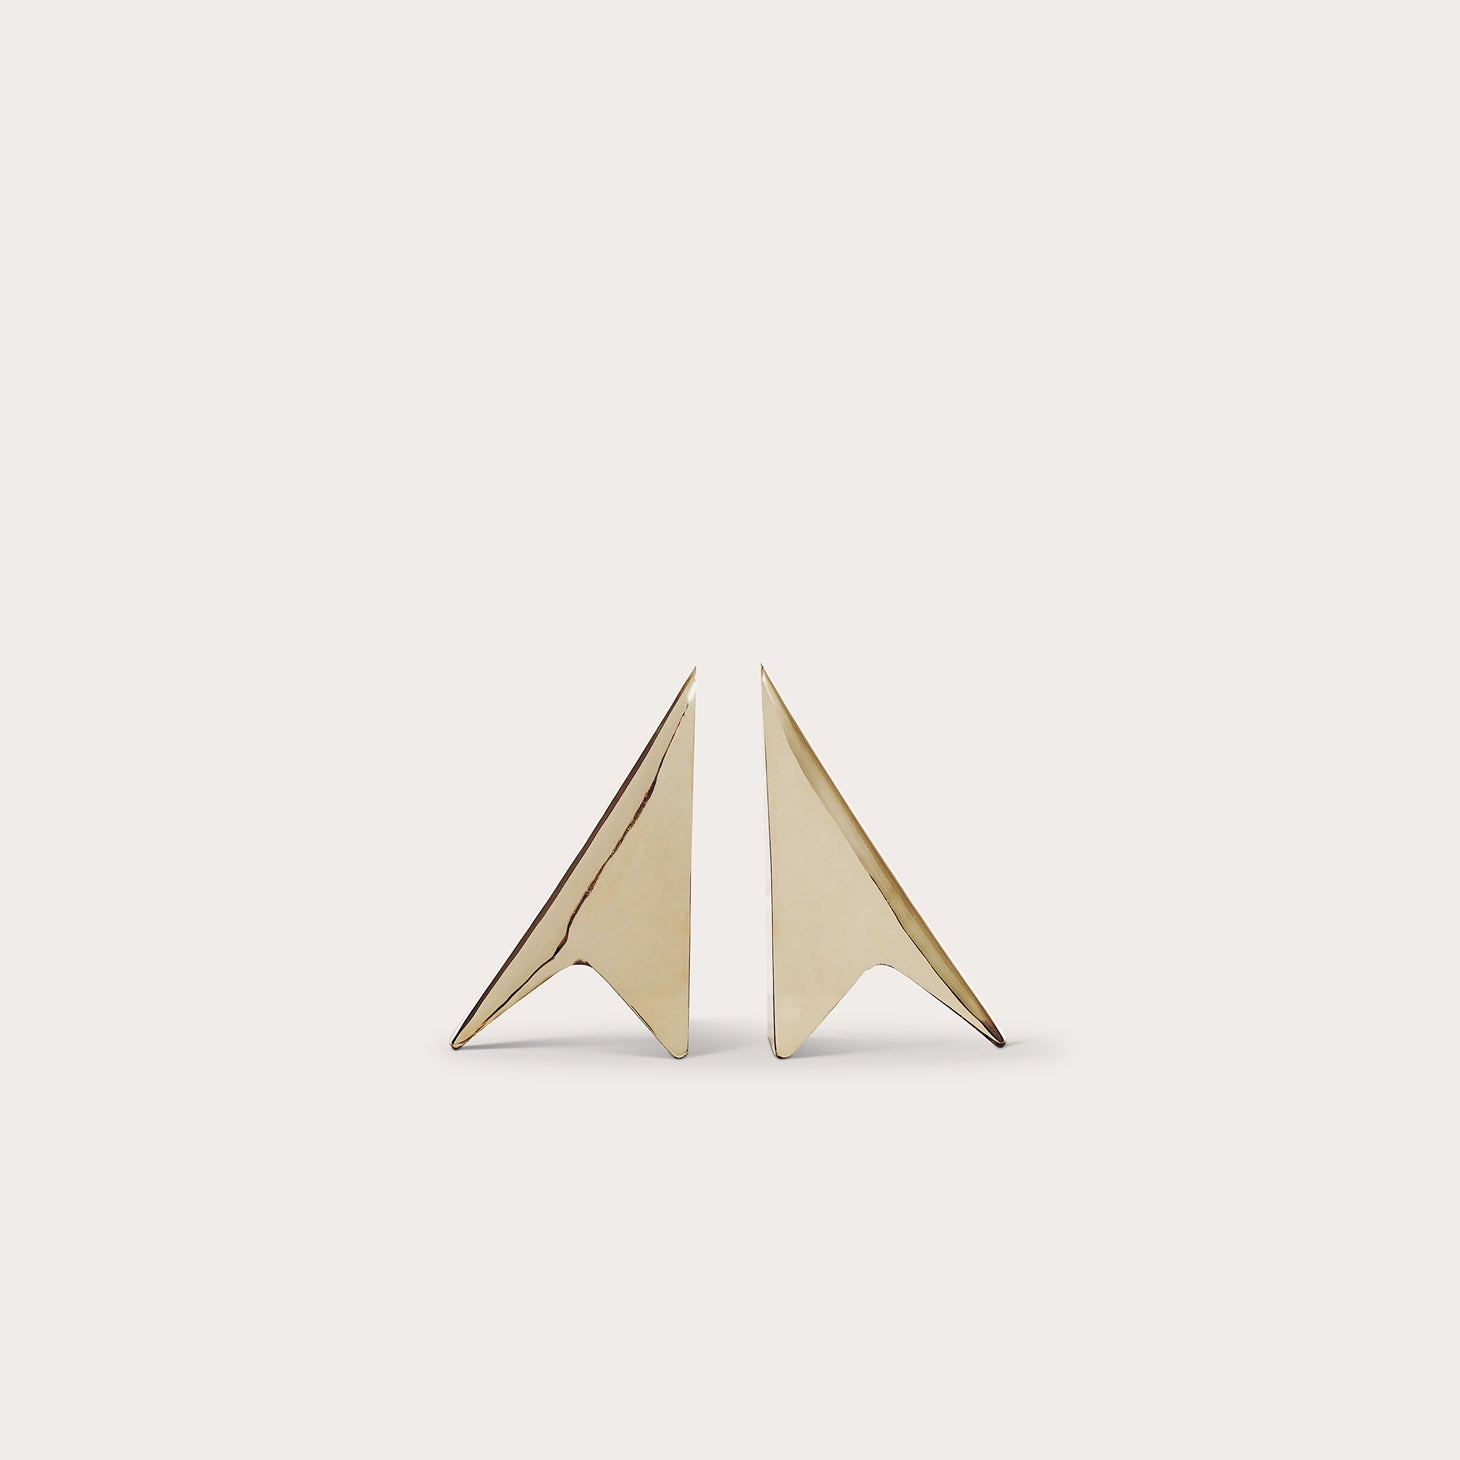 Bookends Triangular Accessories Carl Auböck Designer Furniture Sku: 772-100-10021